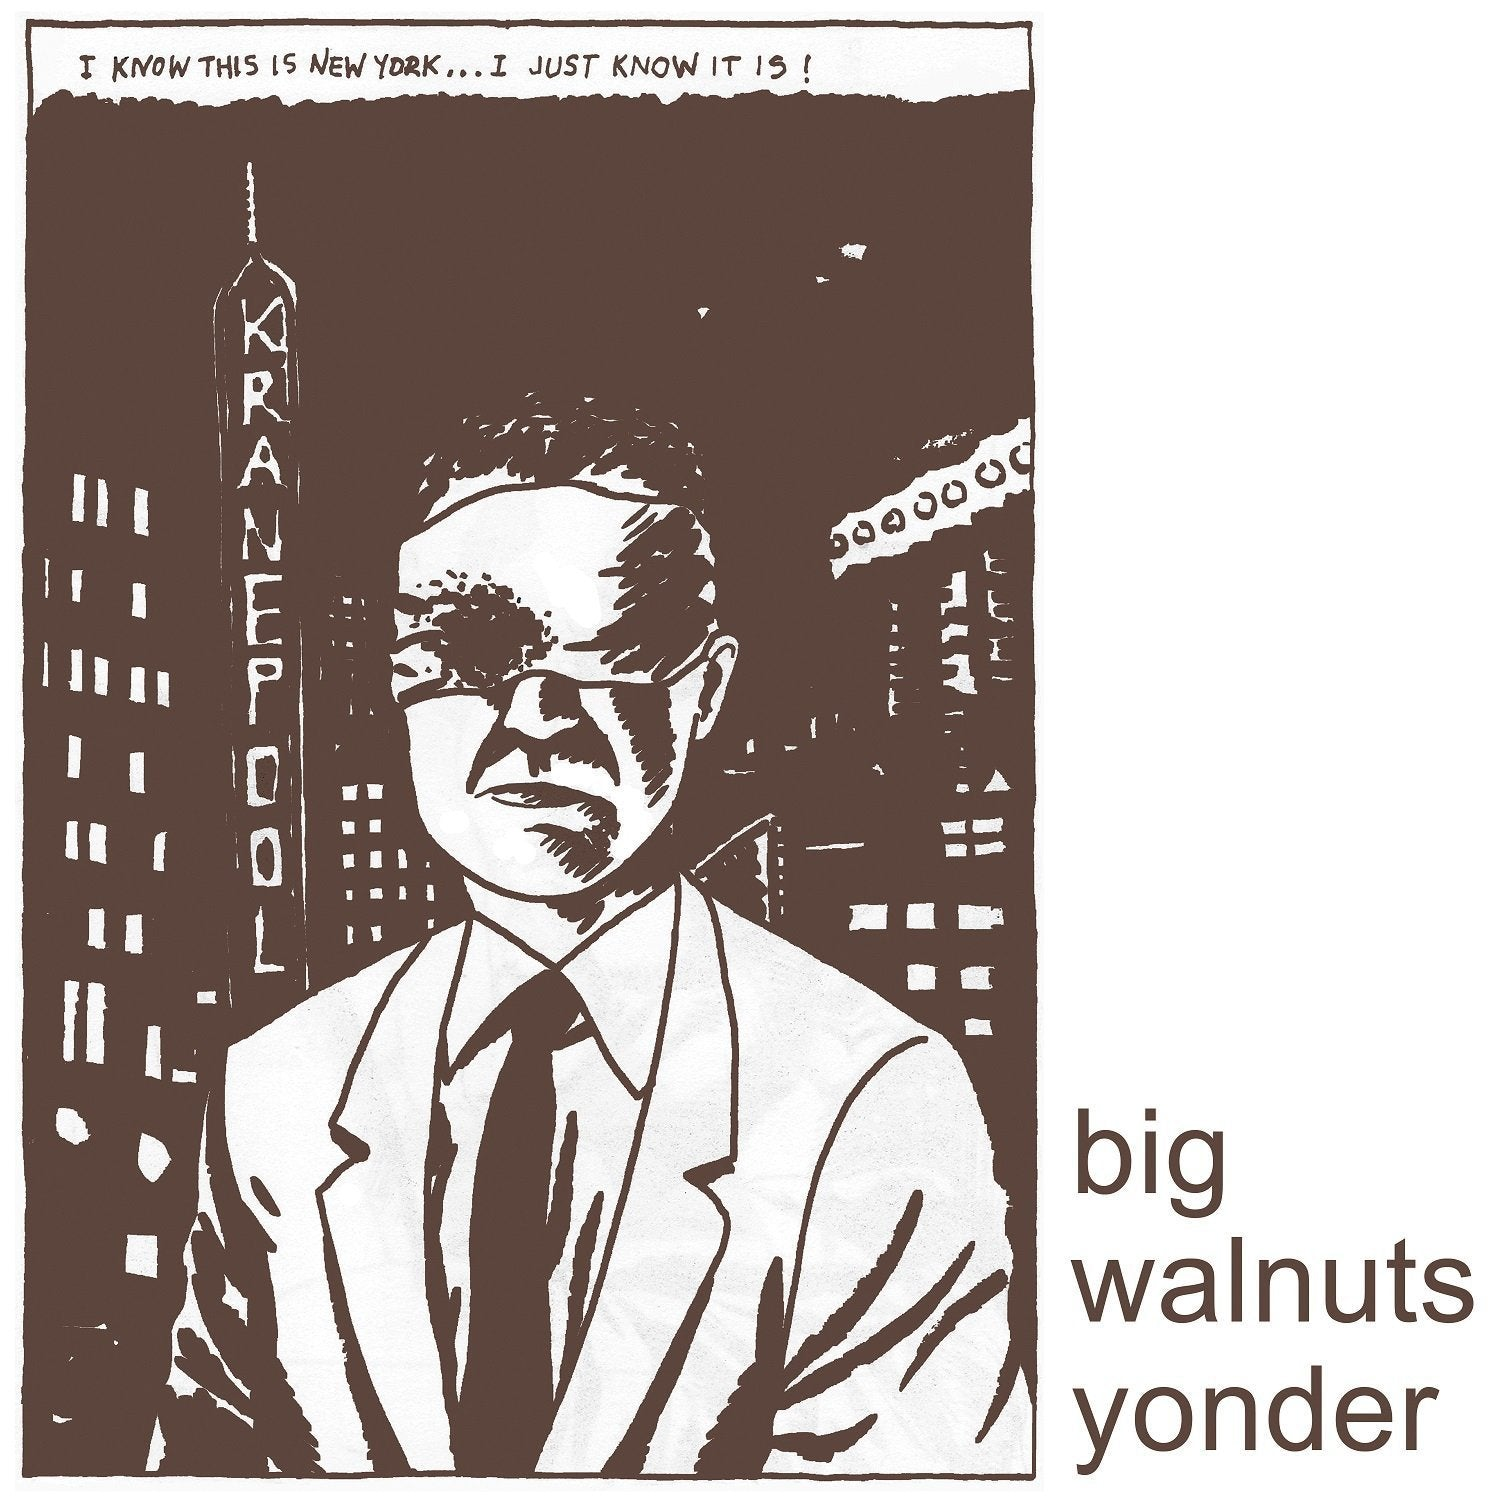 Big Walnuts Yonder/I Know This Is New York?I Just Know It Is [LP]